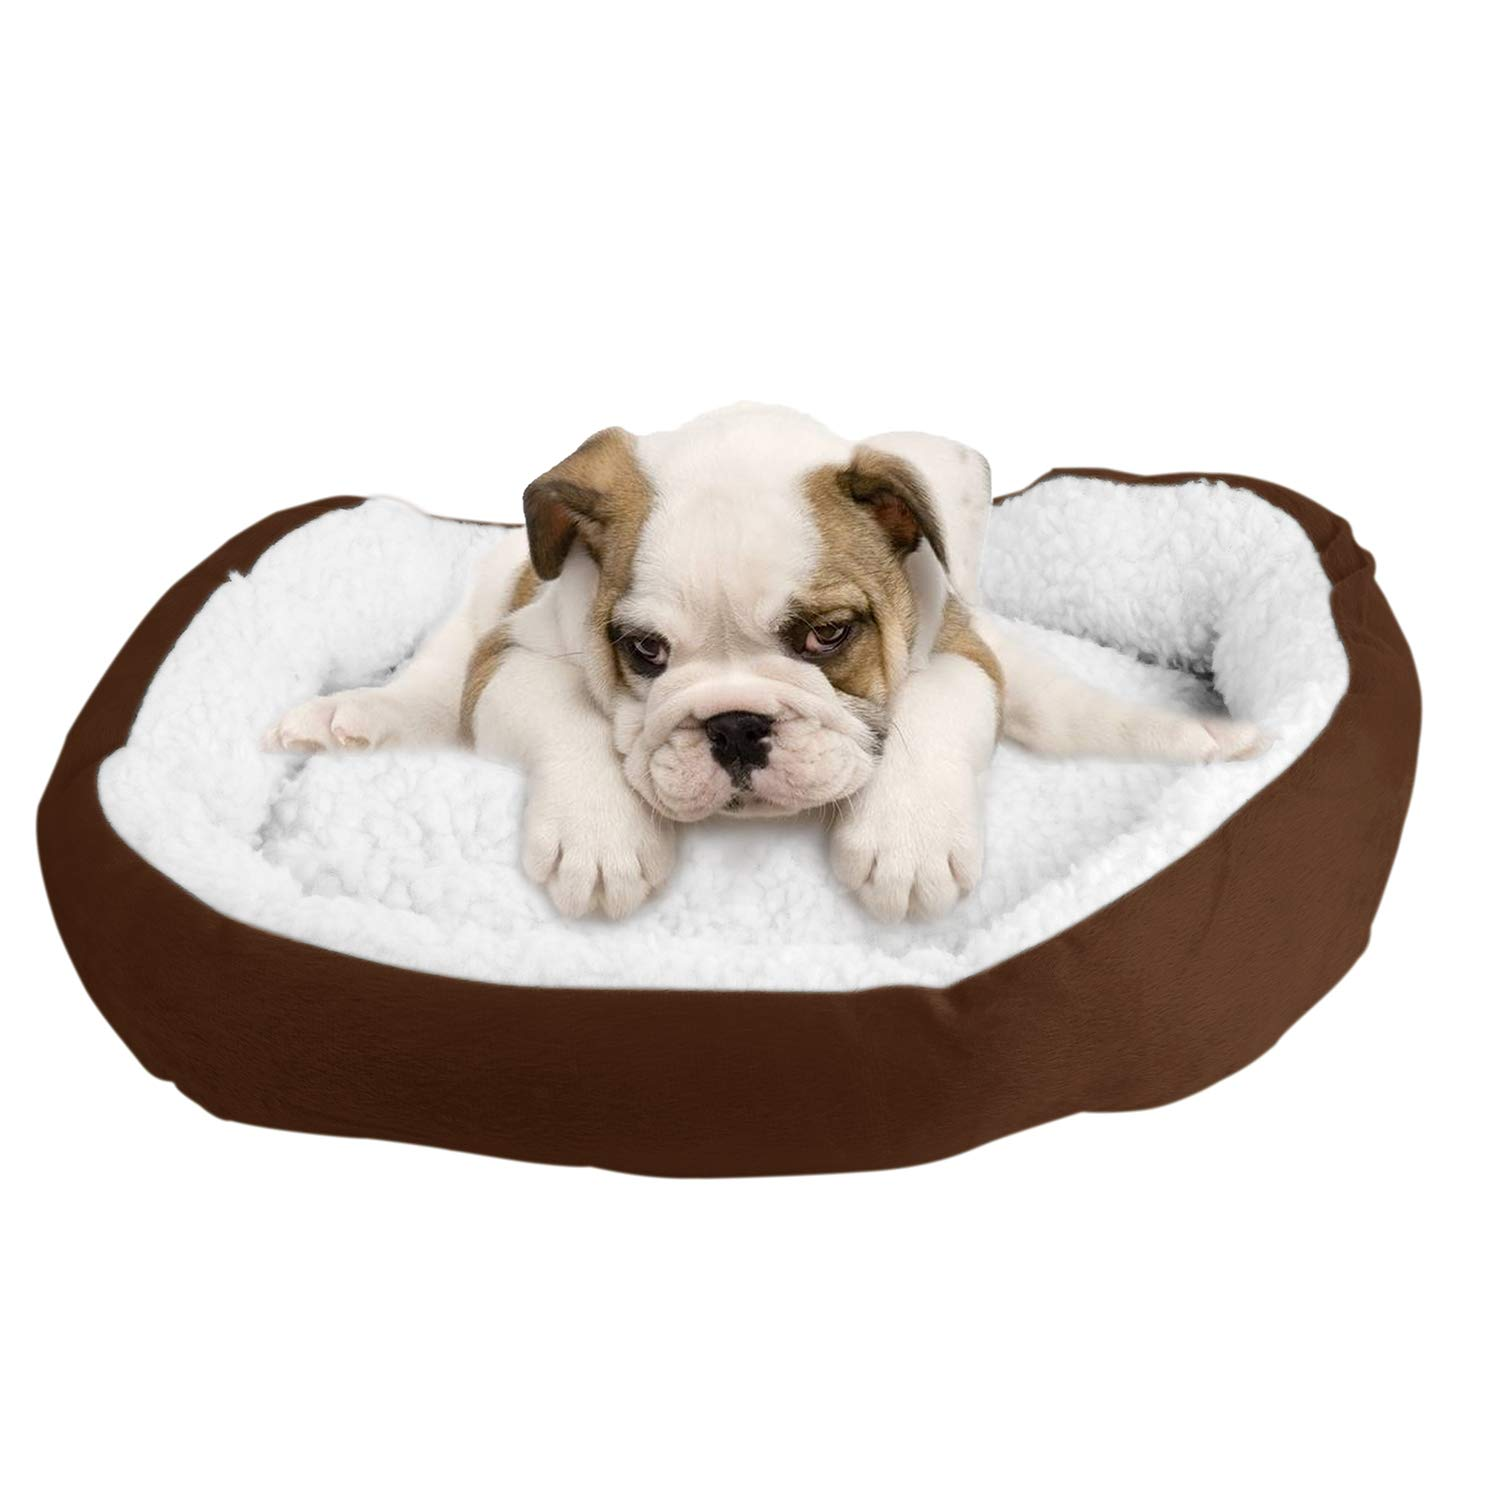 Brown TeqHome Small Dog Bed, Puppy Orthopedic Kennel Soft Pet Warming Beds Cat Cushion, Washable, Lamb Cashmere-Grey (Brown)